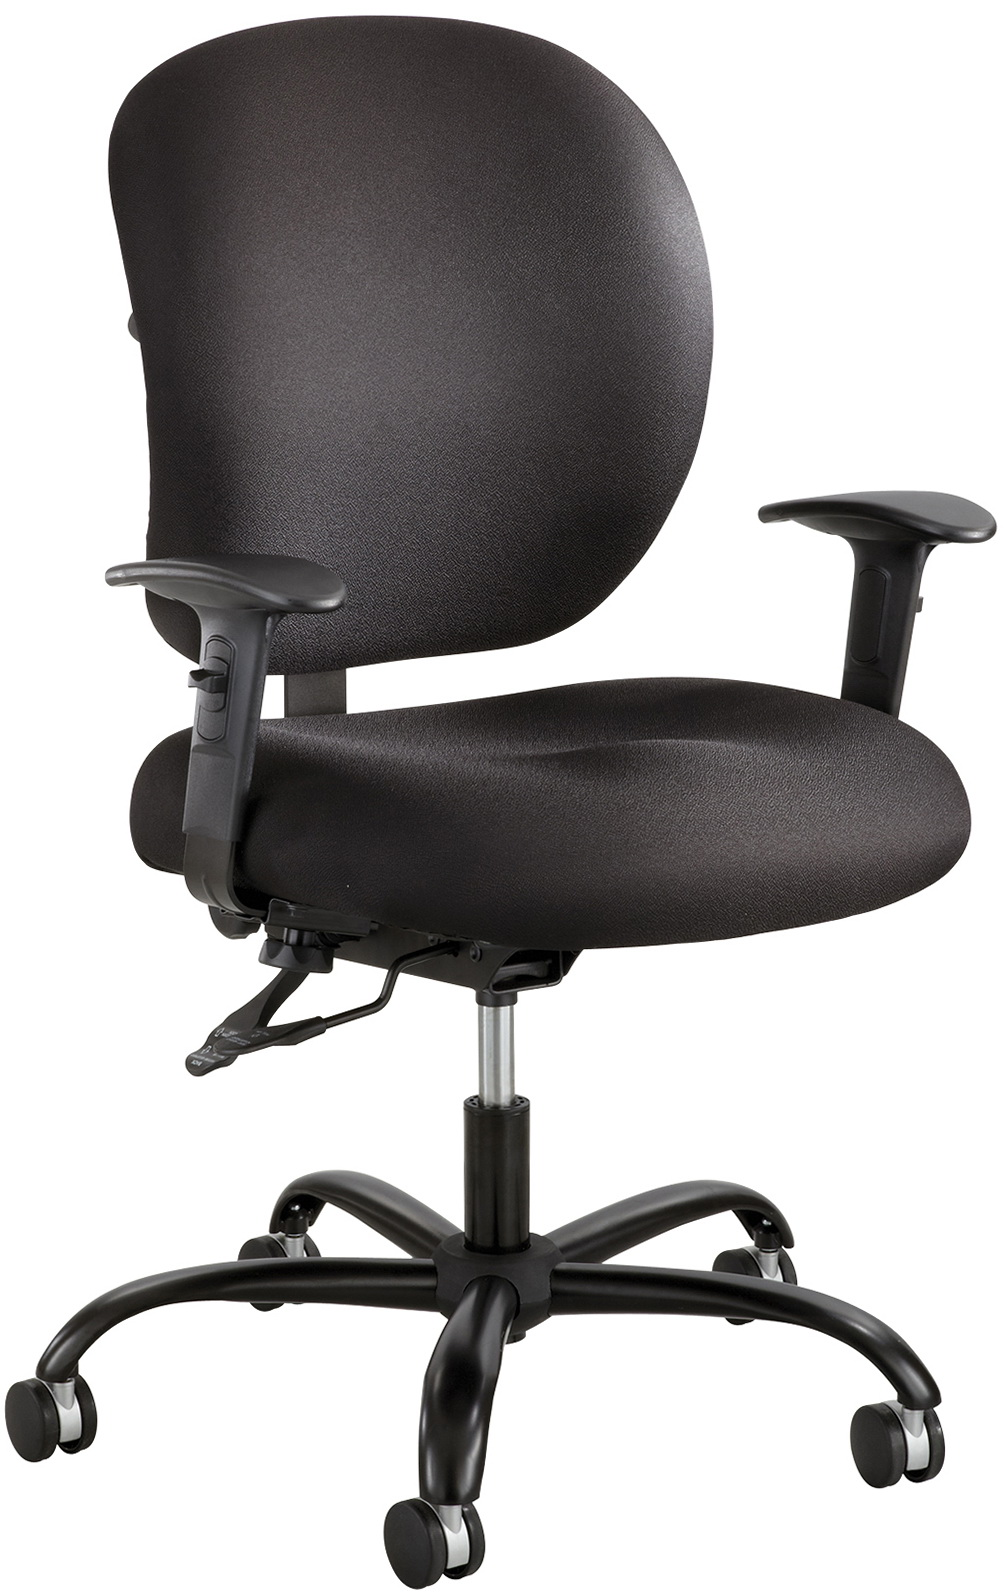 24 Hour Office Chairs Safco Alday 24 Hour Office Chair 3391bl